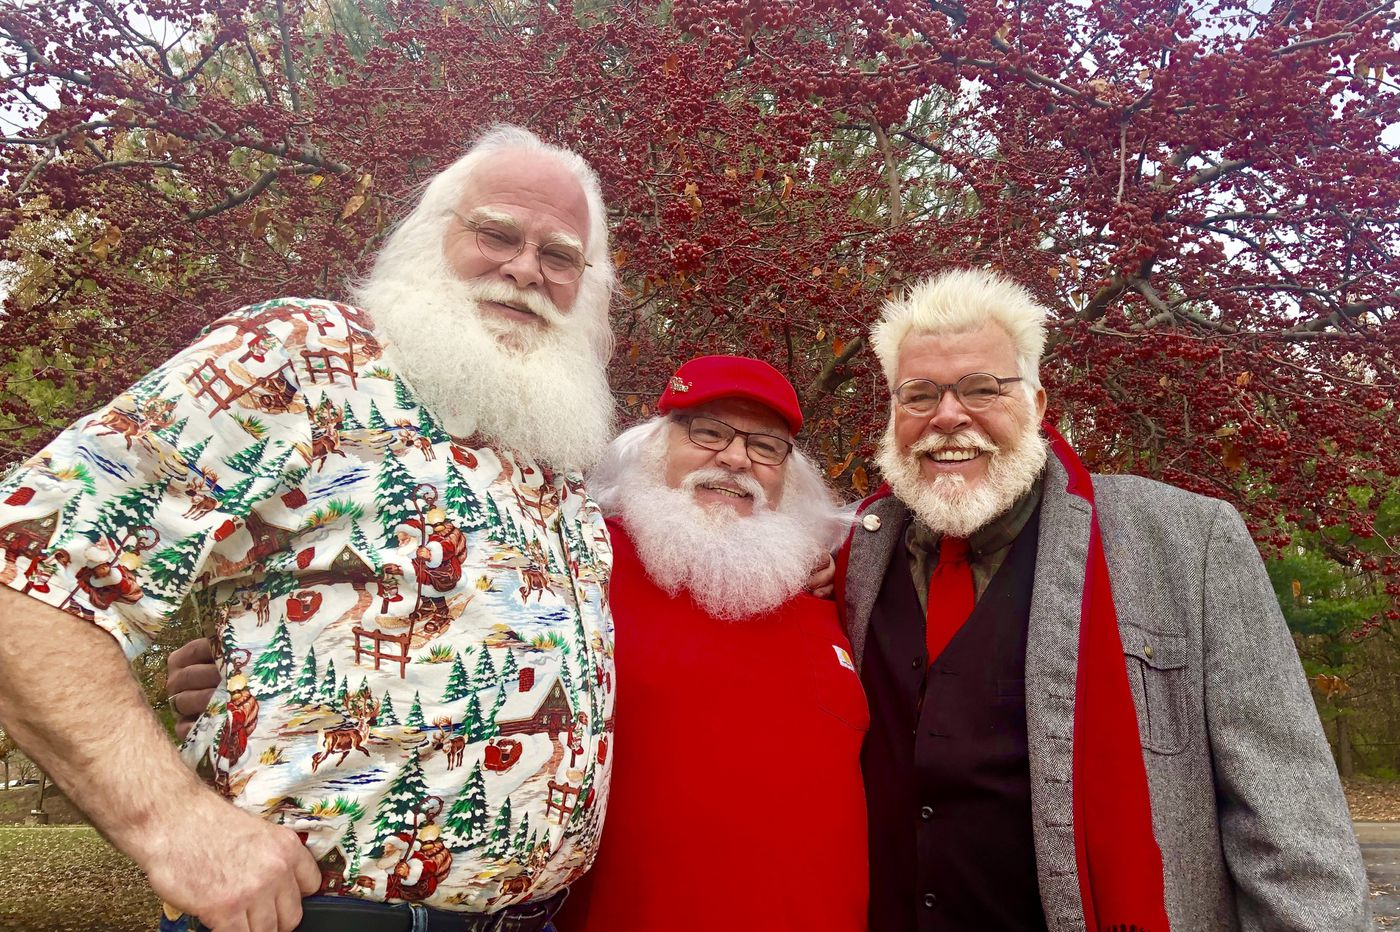 Three New Jersey Santas agree: There's more to it than red suits and a few ho-ho-hos